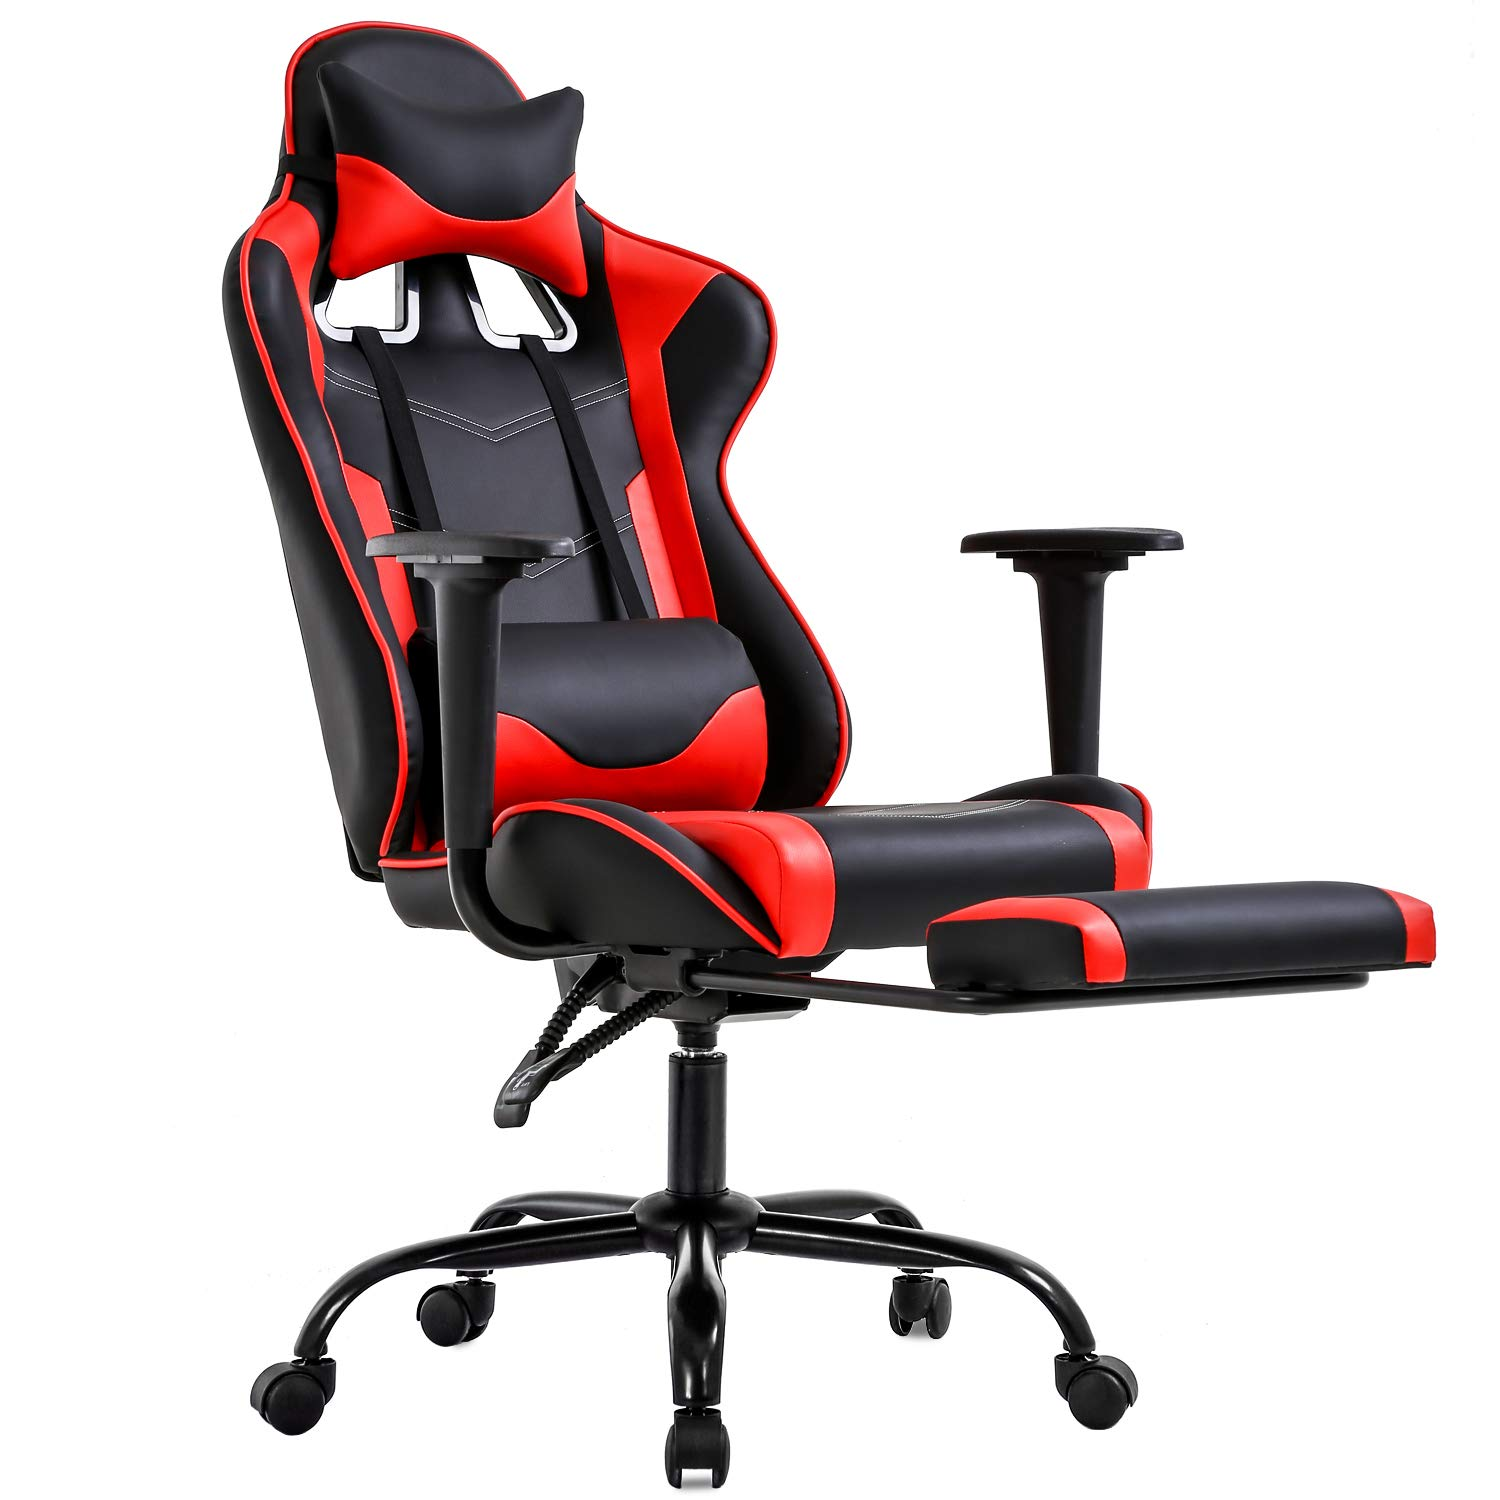 Gaming Chair Office Chair Ergonomic Desk Chair with Footrest Arms Lumbar Support Headrest Swivel Rolling High Back Racing Computer Chair for Women Men Adults Girls,Red by BestOffice